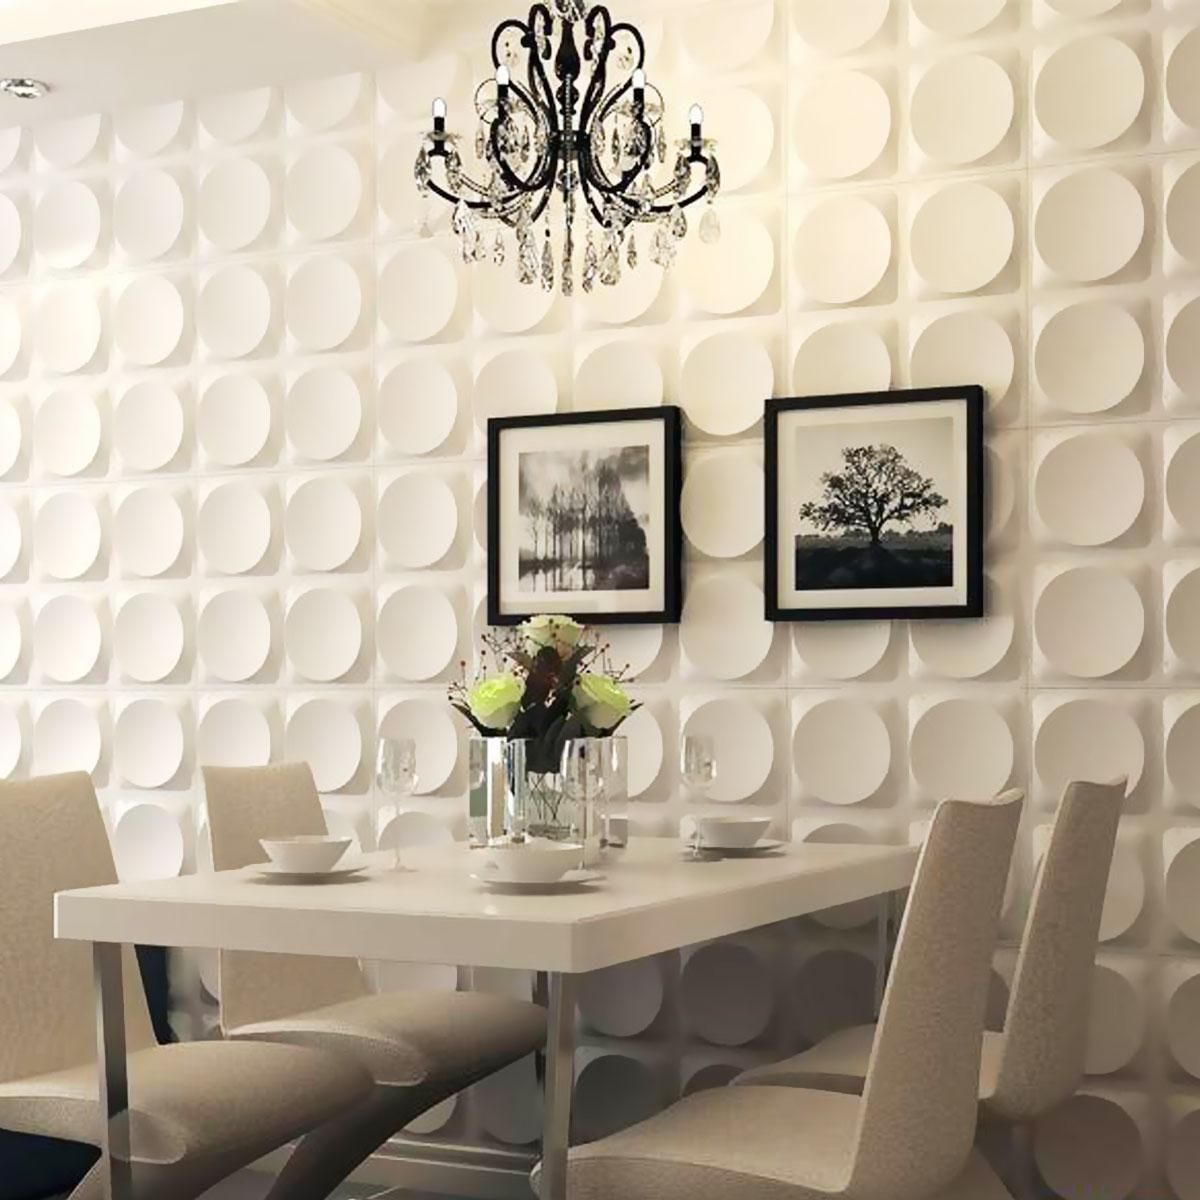 19 5 8 Inch W X 19 5 8 Inch H Adonis Endurawall Decorative 3d Wall Panel White Plastic Wall Panels 3d Wall Panels Wall Paneling